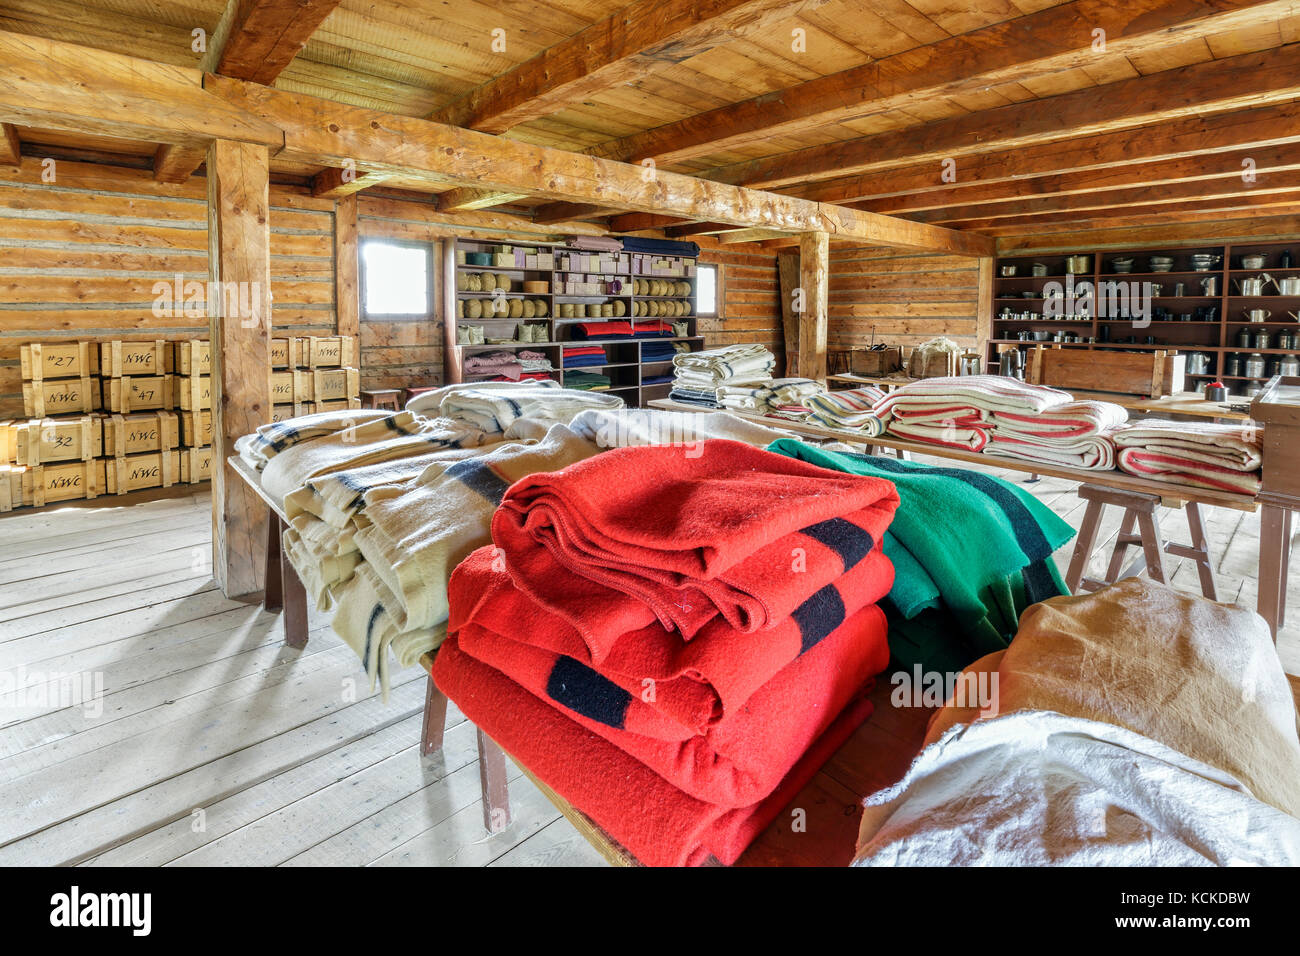 Wool blankets of The North West Company, Fort William Historical Park, Thunder Bay, Ontario, Canada. - Stock Image